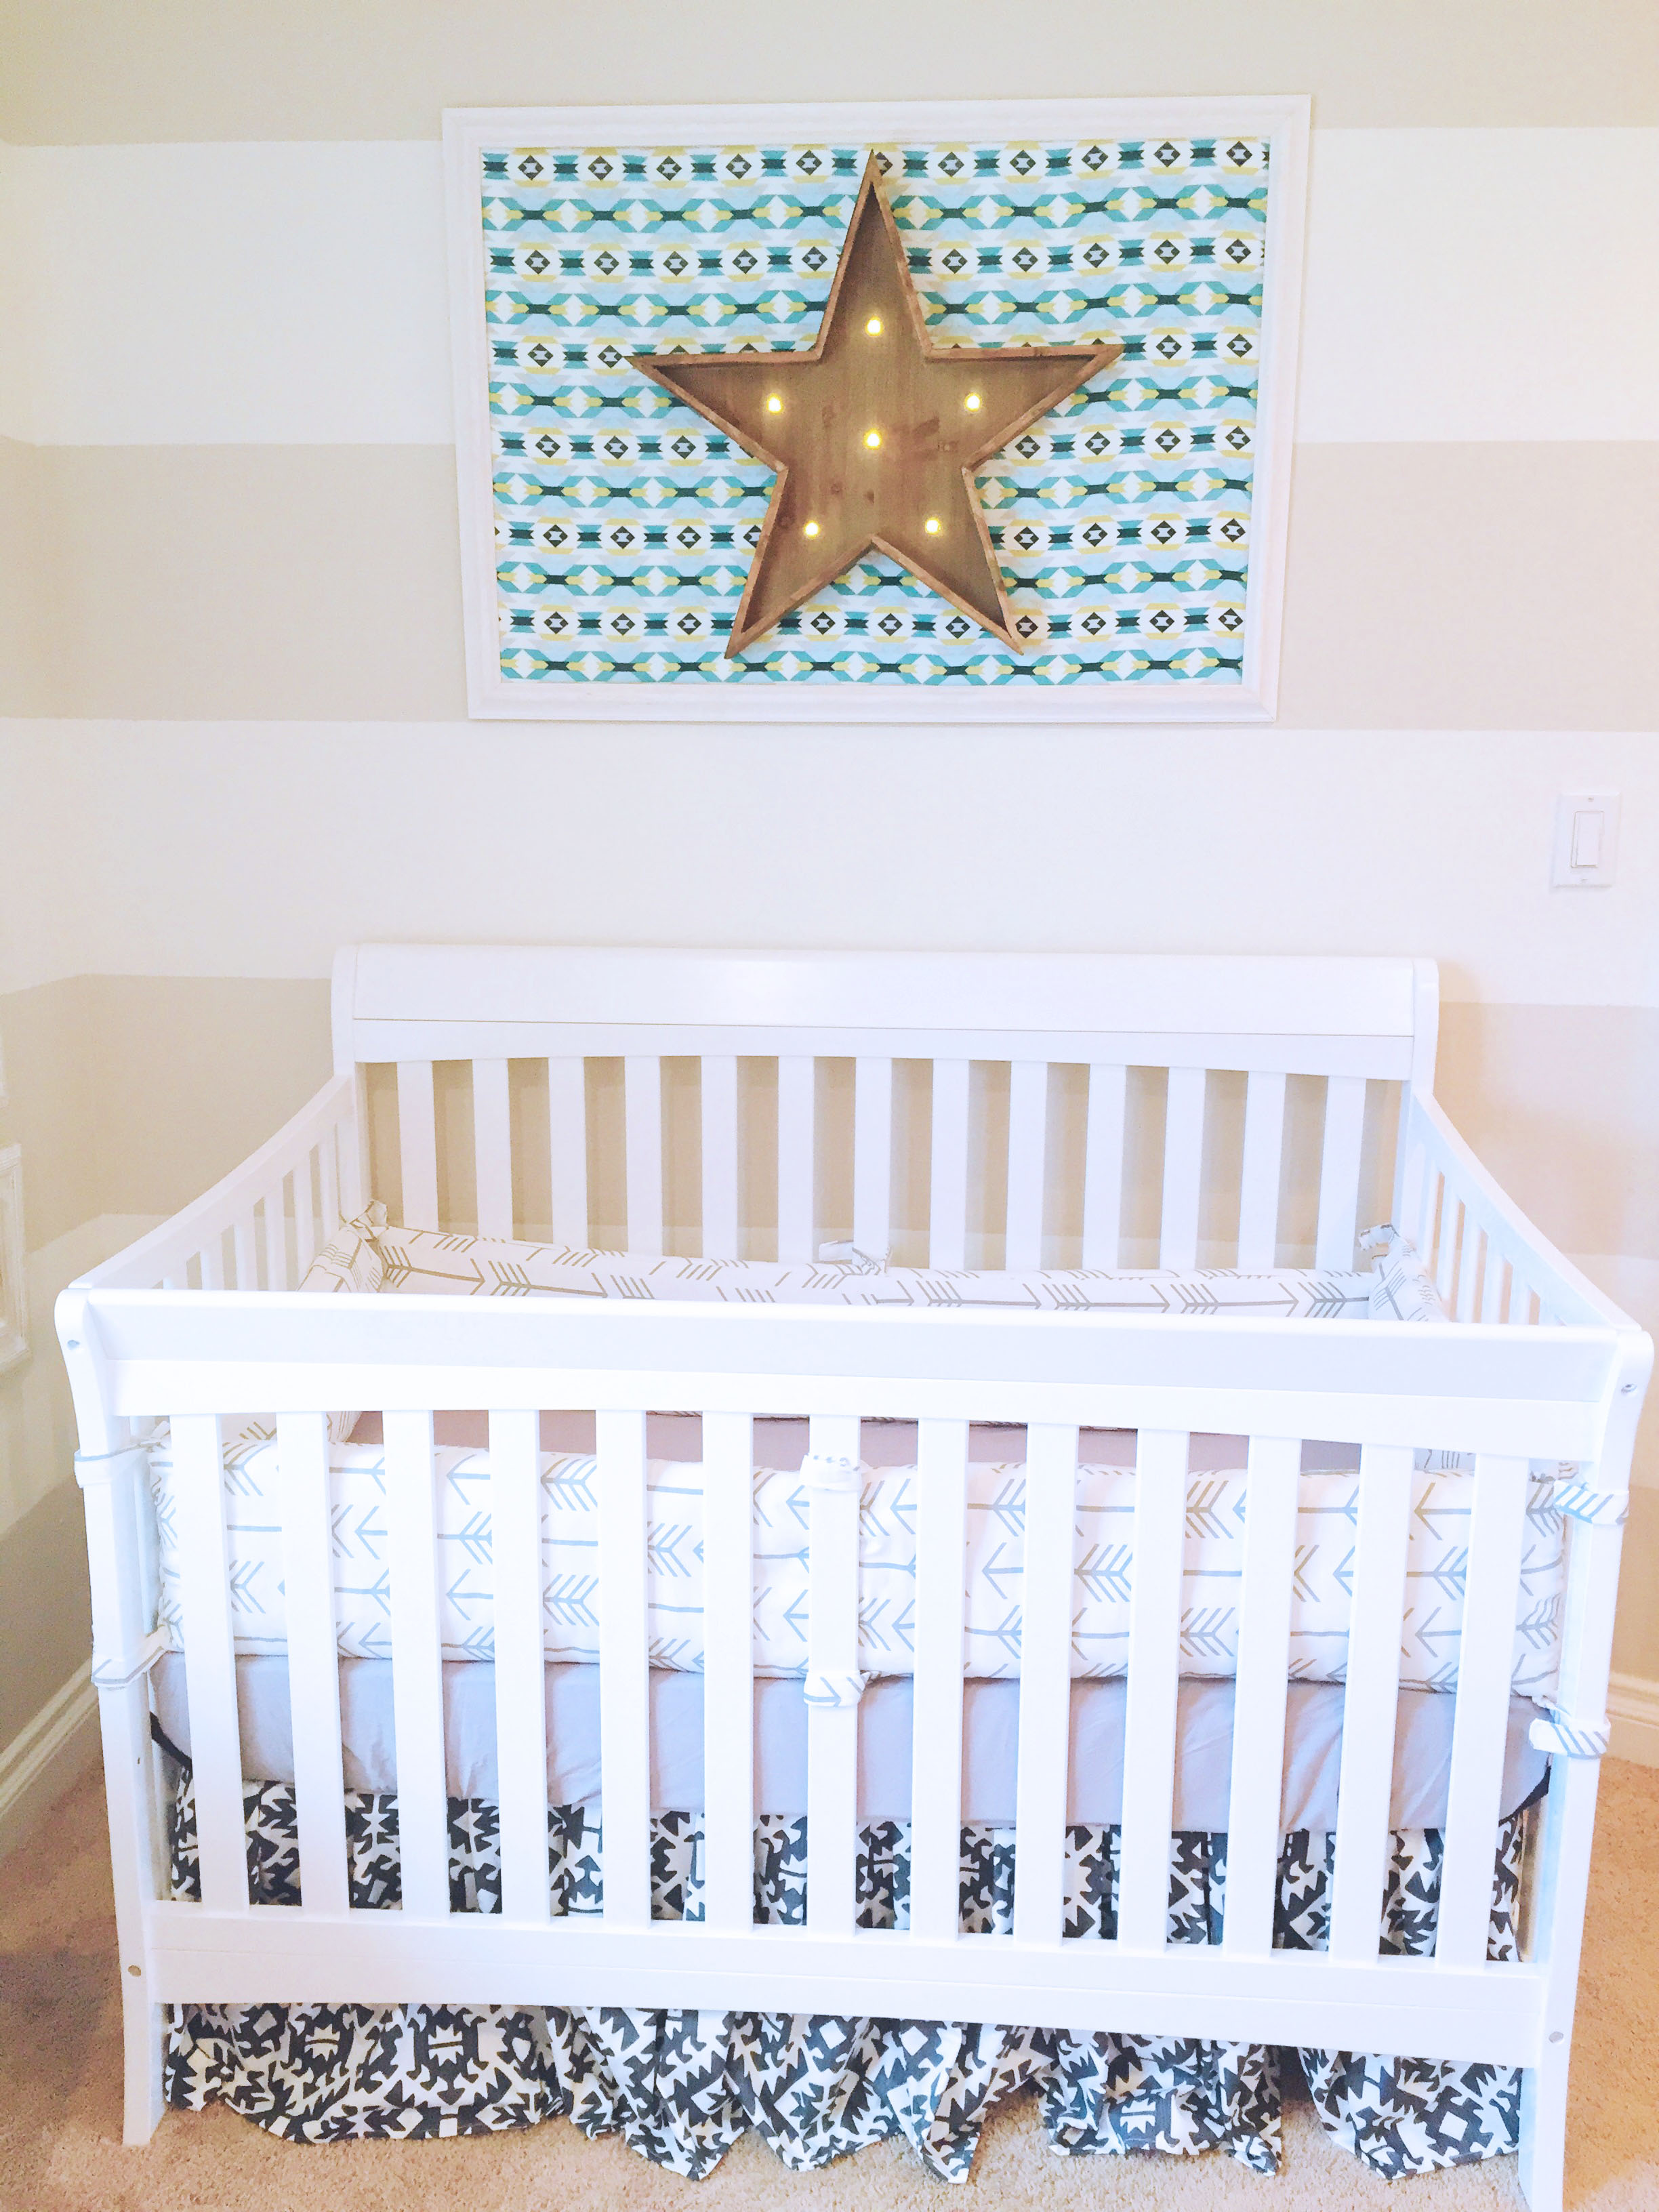 How to Make a Custom Photo Mat - Baby Nursery 101 - Miss Bizi Bee